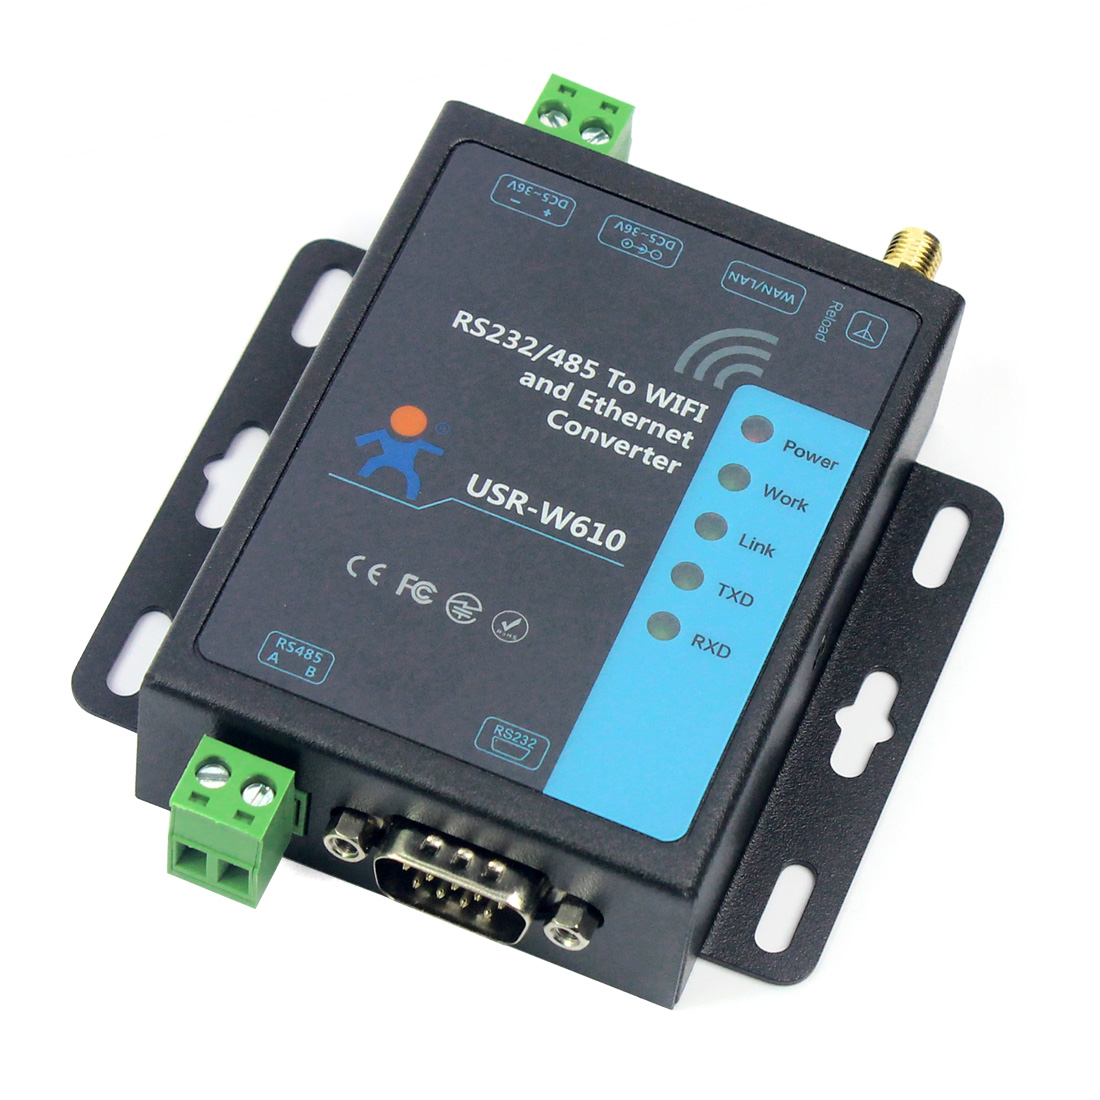 RS232 RS485 Serial To WiFi And Ethernet Converter USR-W610 Support TCP Server/TCP Client/UDP Server/UDP